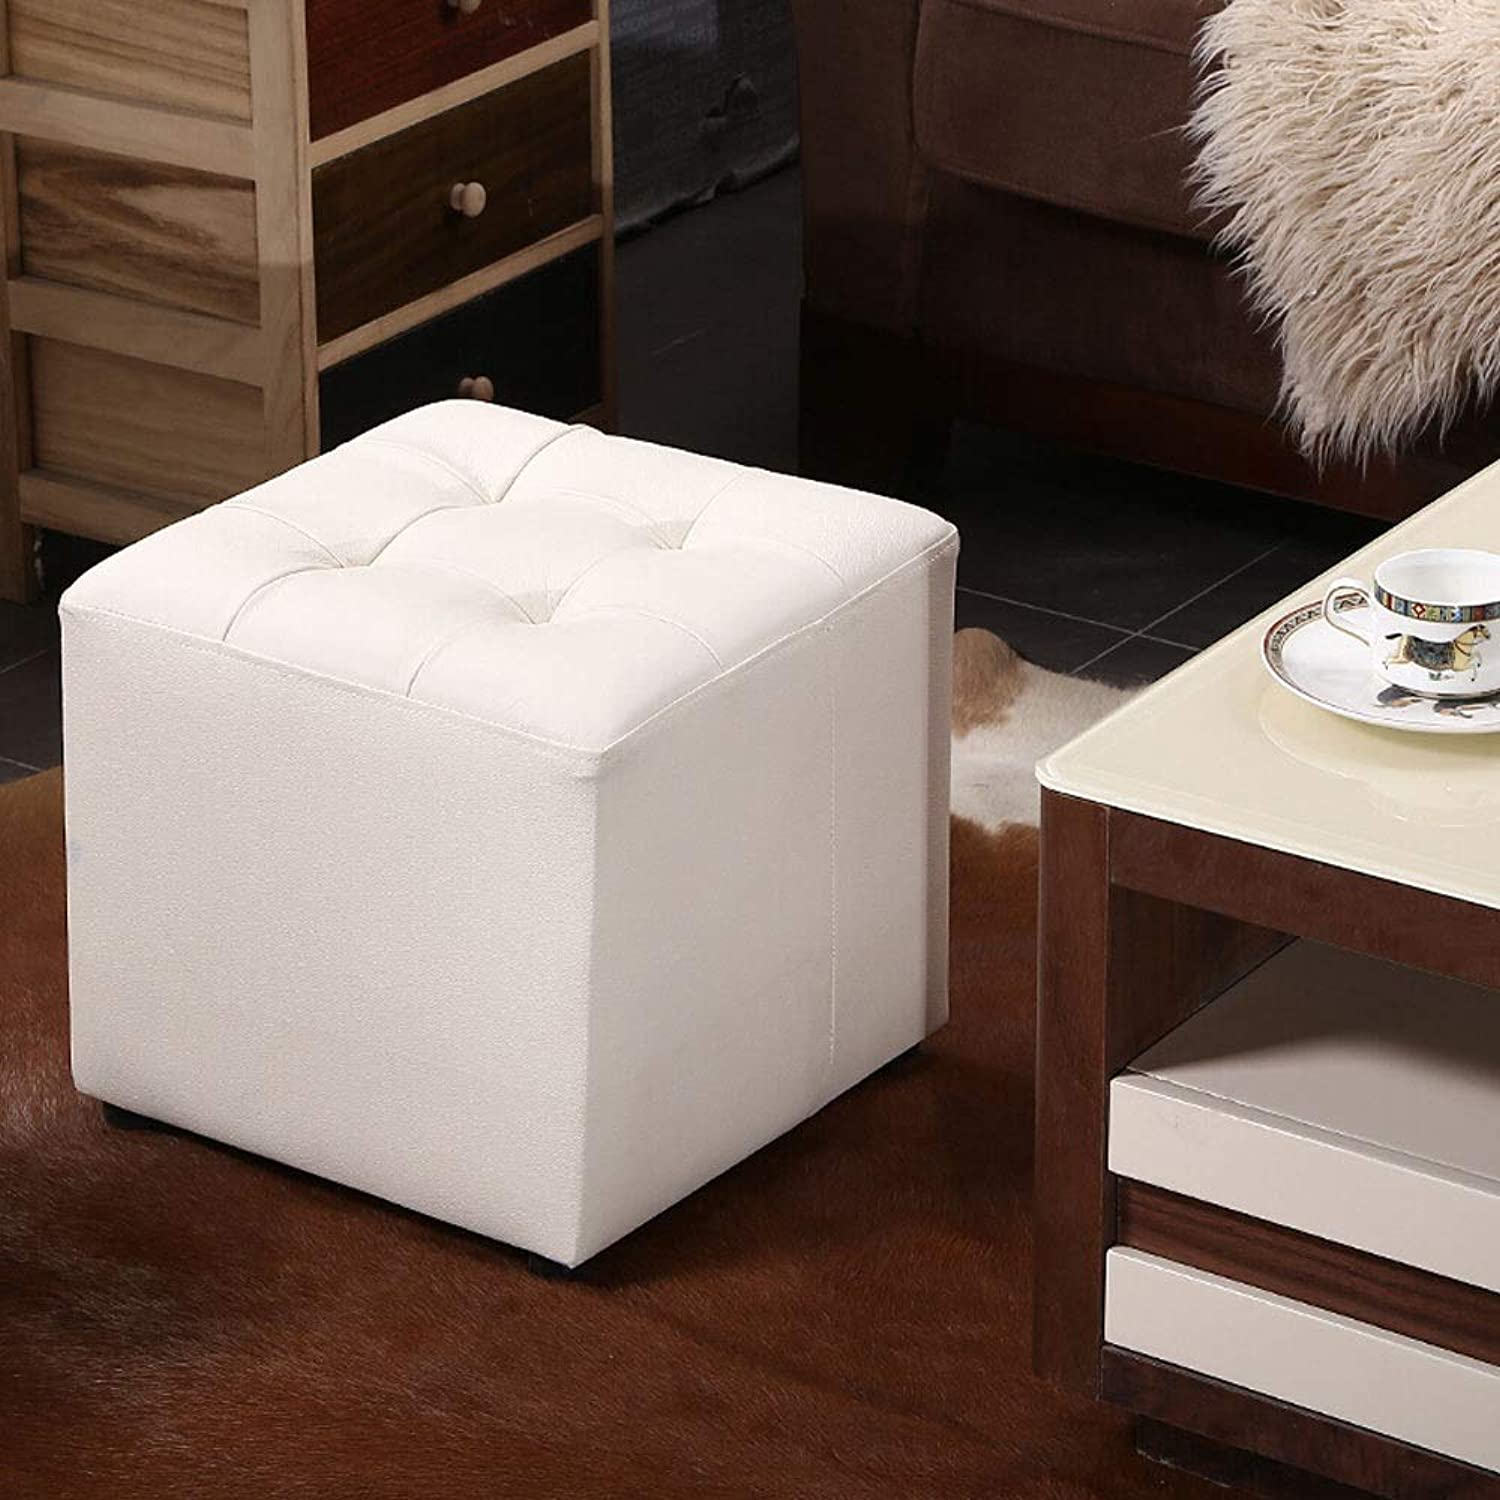 Paddia Creative Fashion Leather Sofa Stool Stool Stool Changing His shoes Stool Square Stool Storage Stool Dressing Stool Footstool Living Room Solid Simple Modern Small Round Stool Bedroom Living Roo